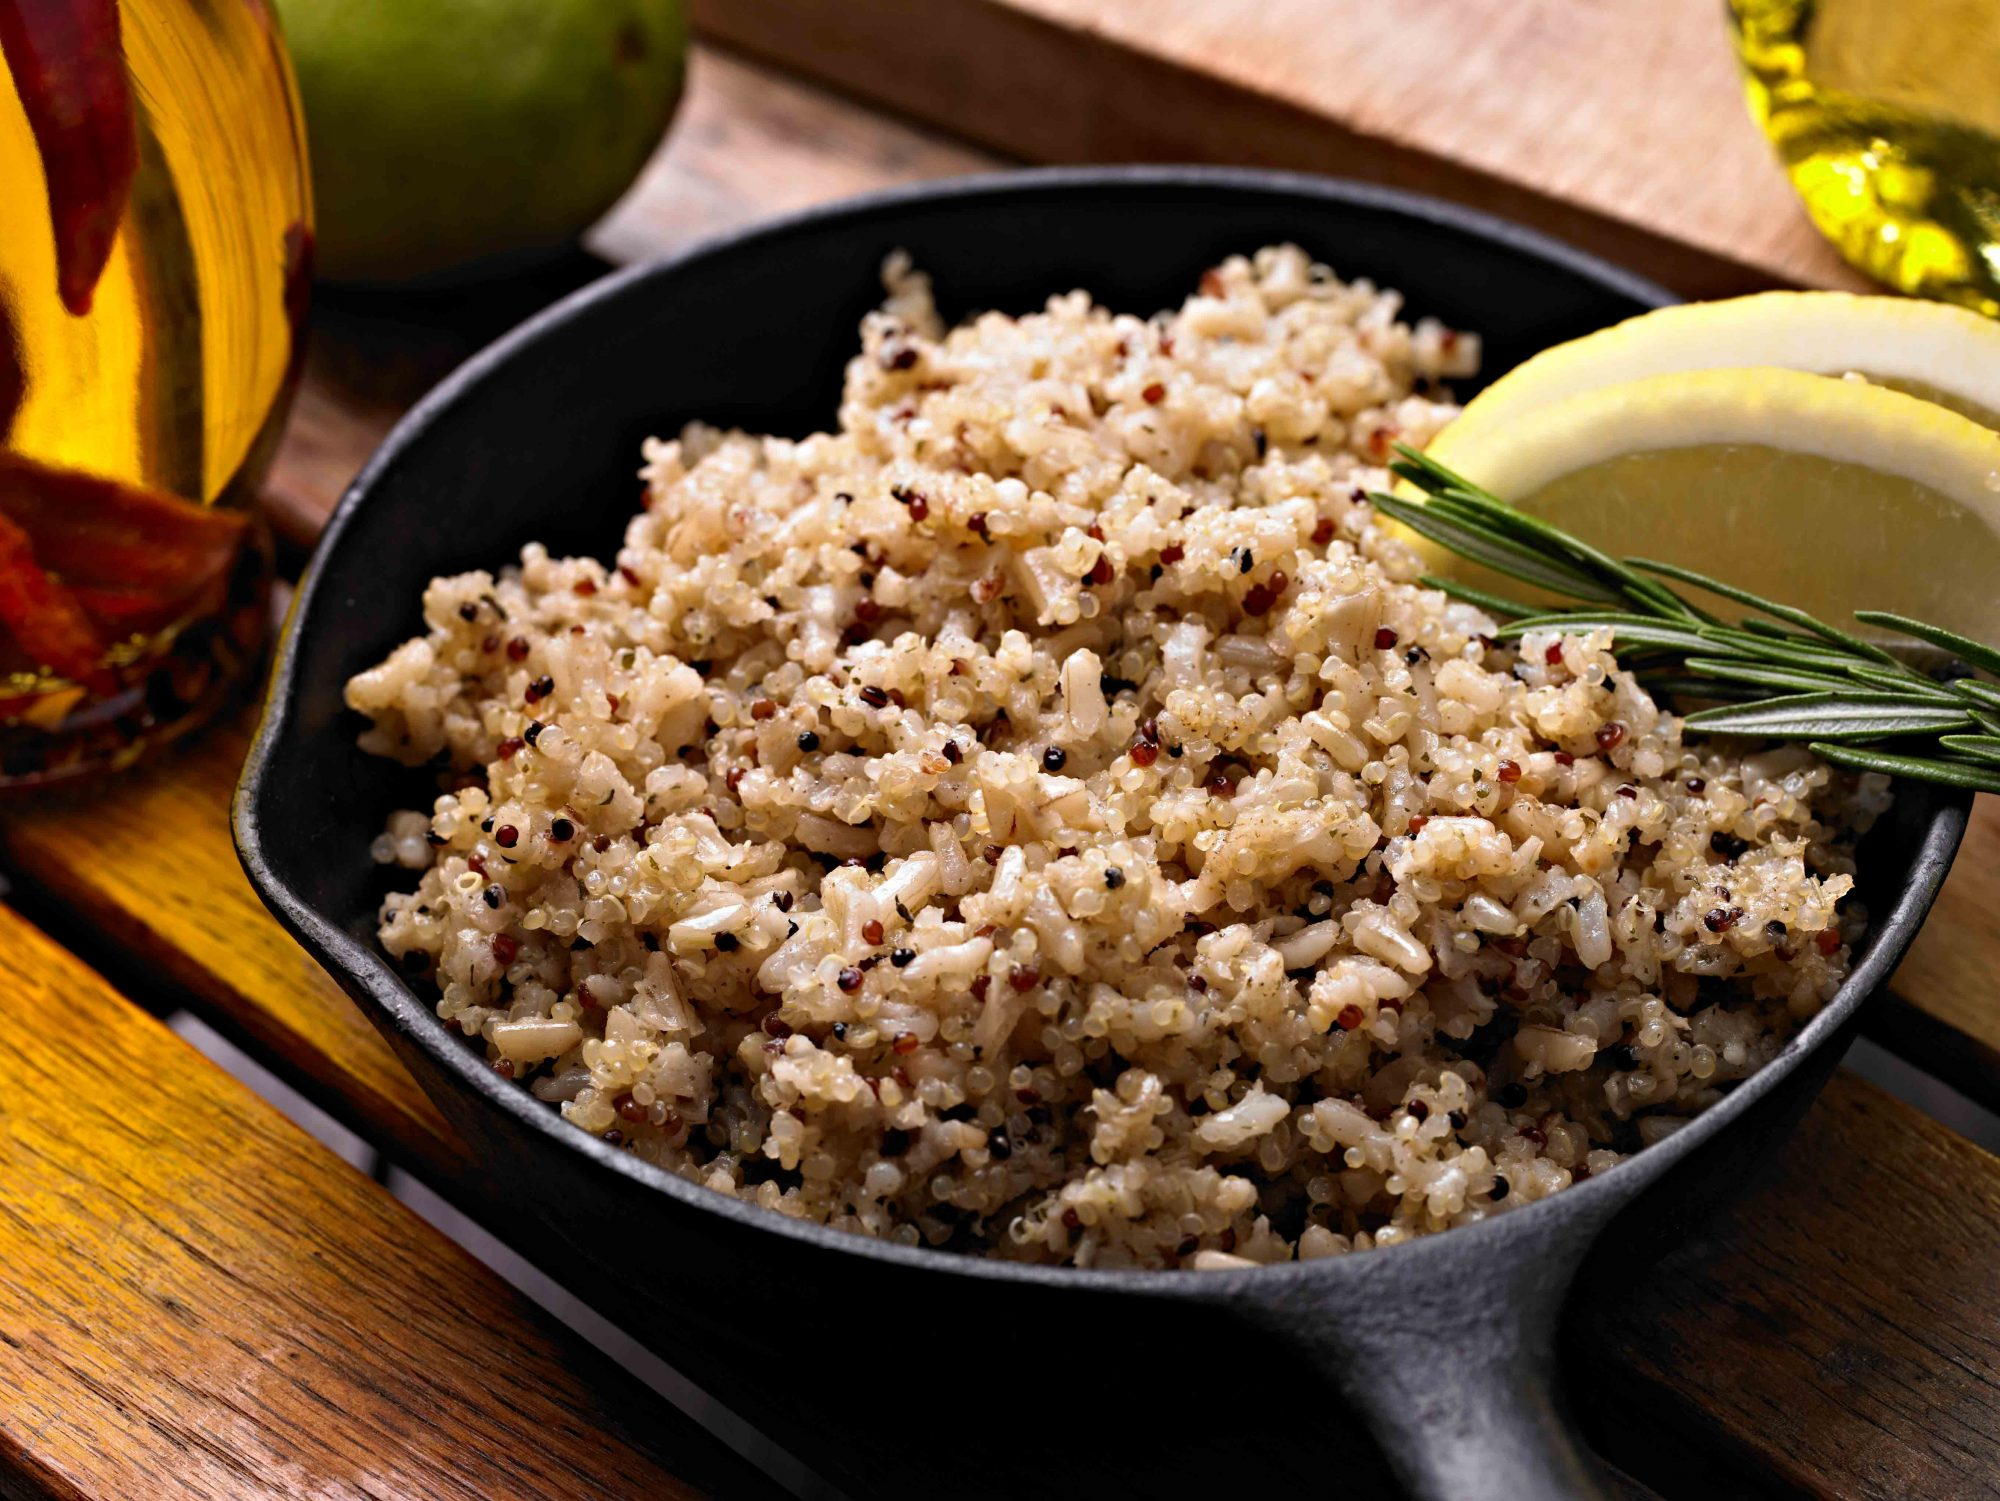 brown rice cooking in a pan